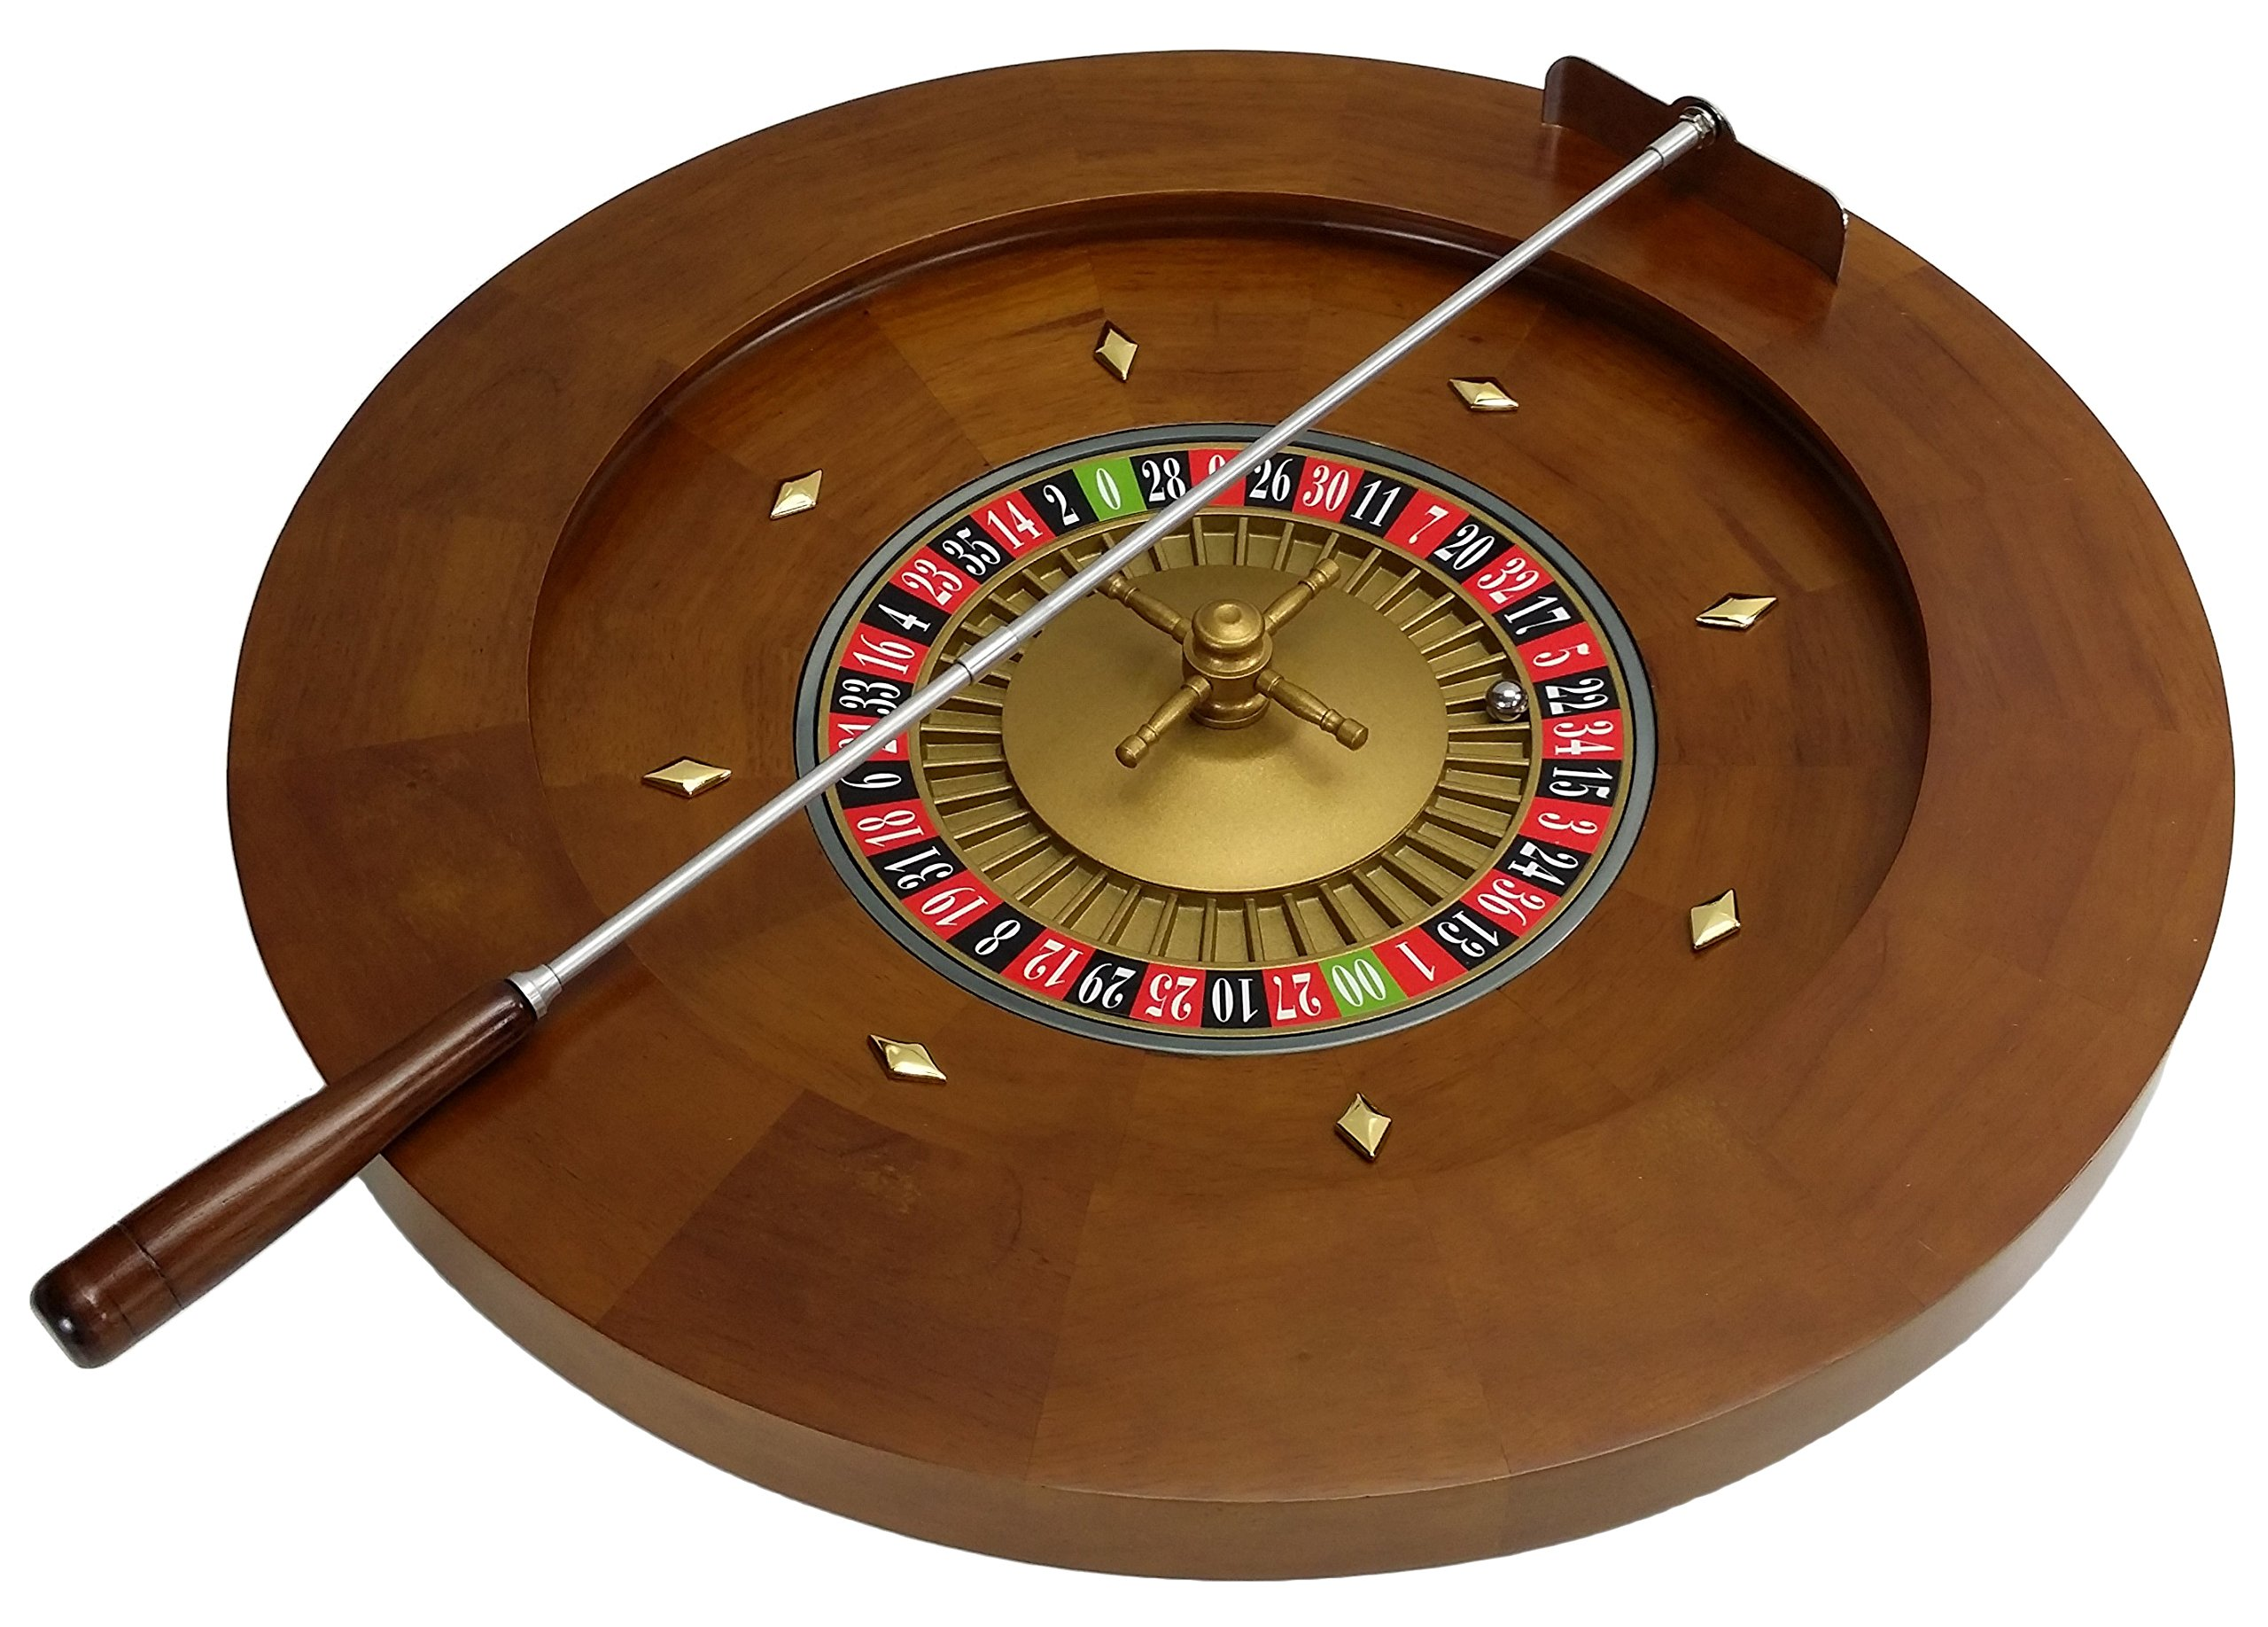 20'' Professional Wood Roulette Wheel With Layout For Table or Freestanding by HPL